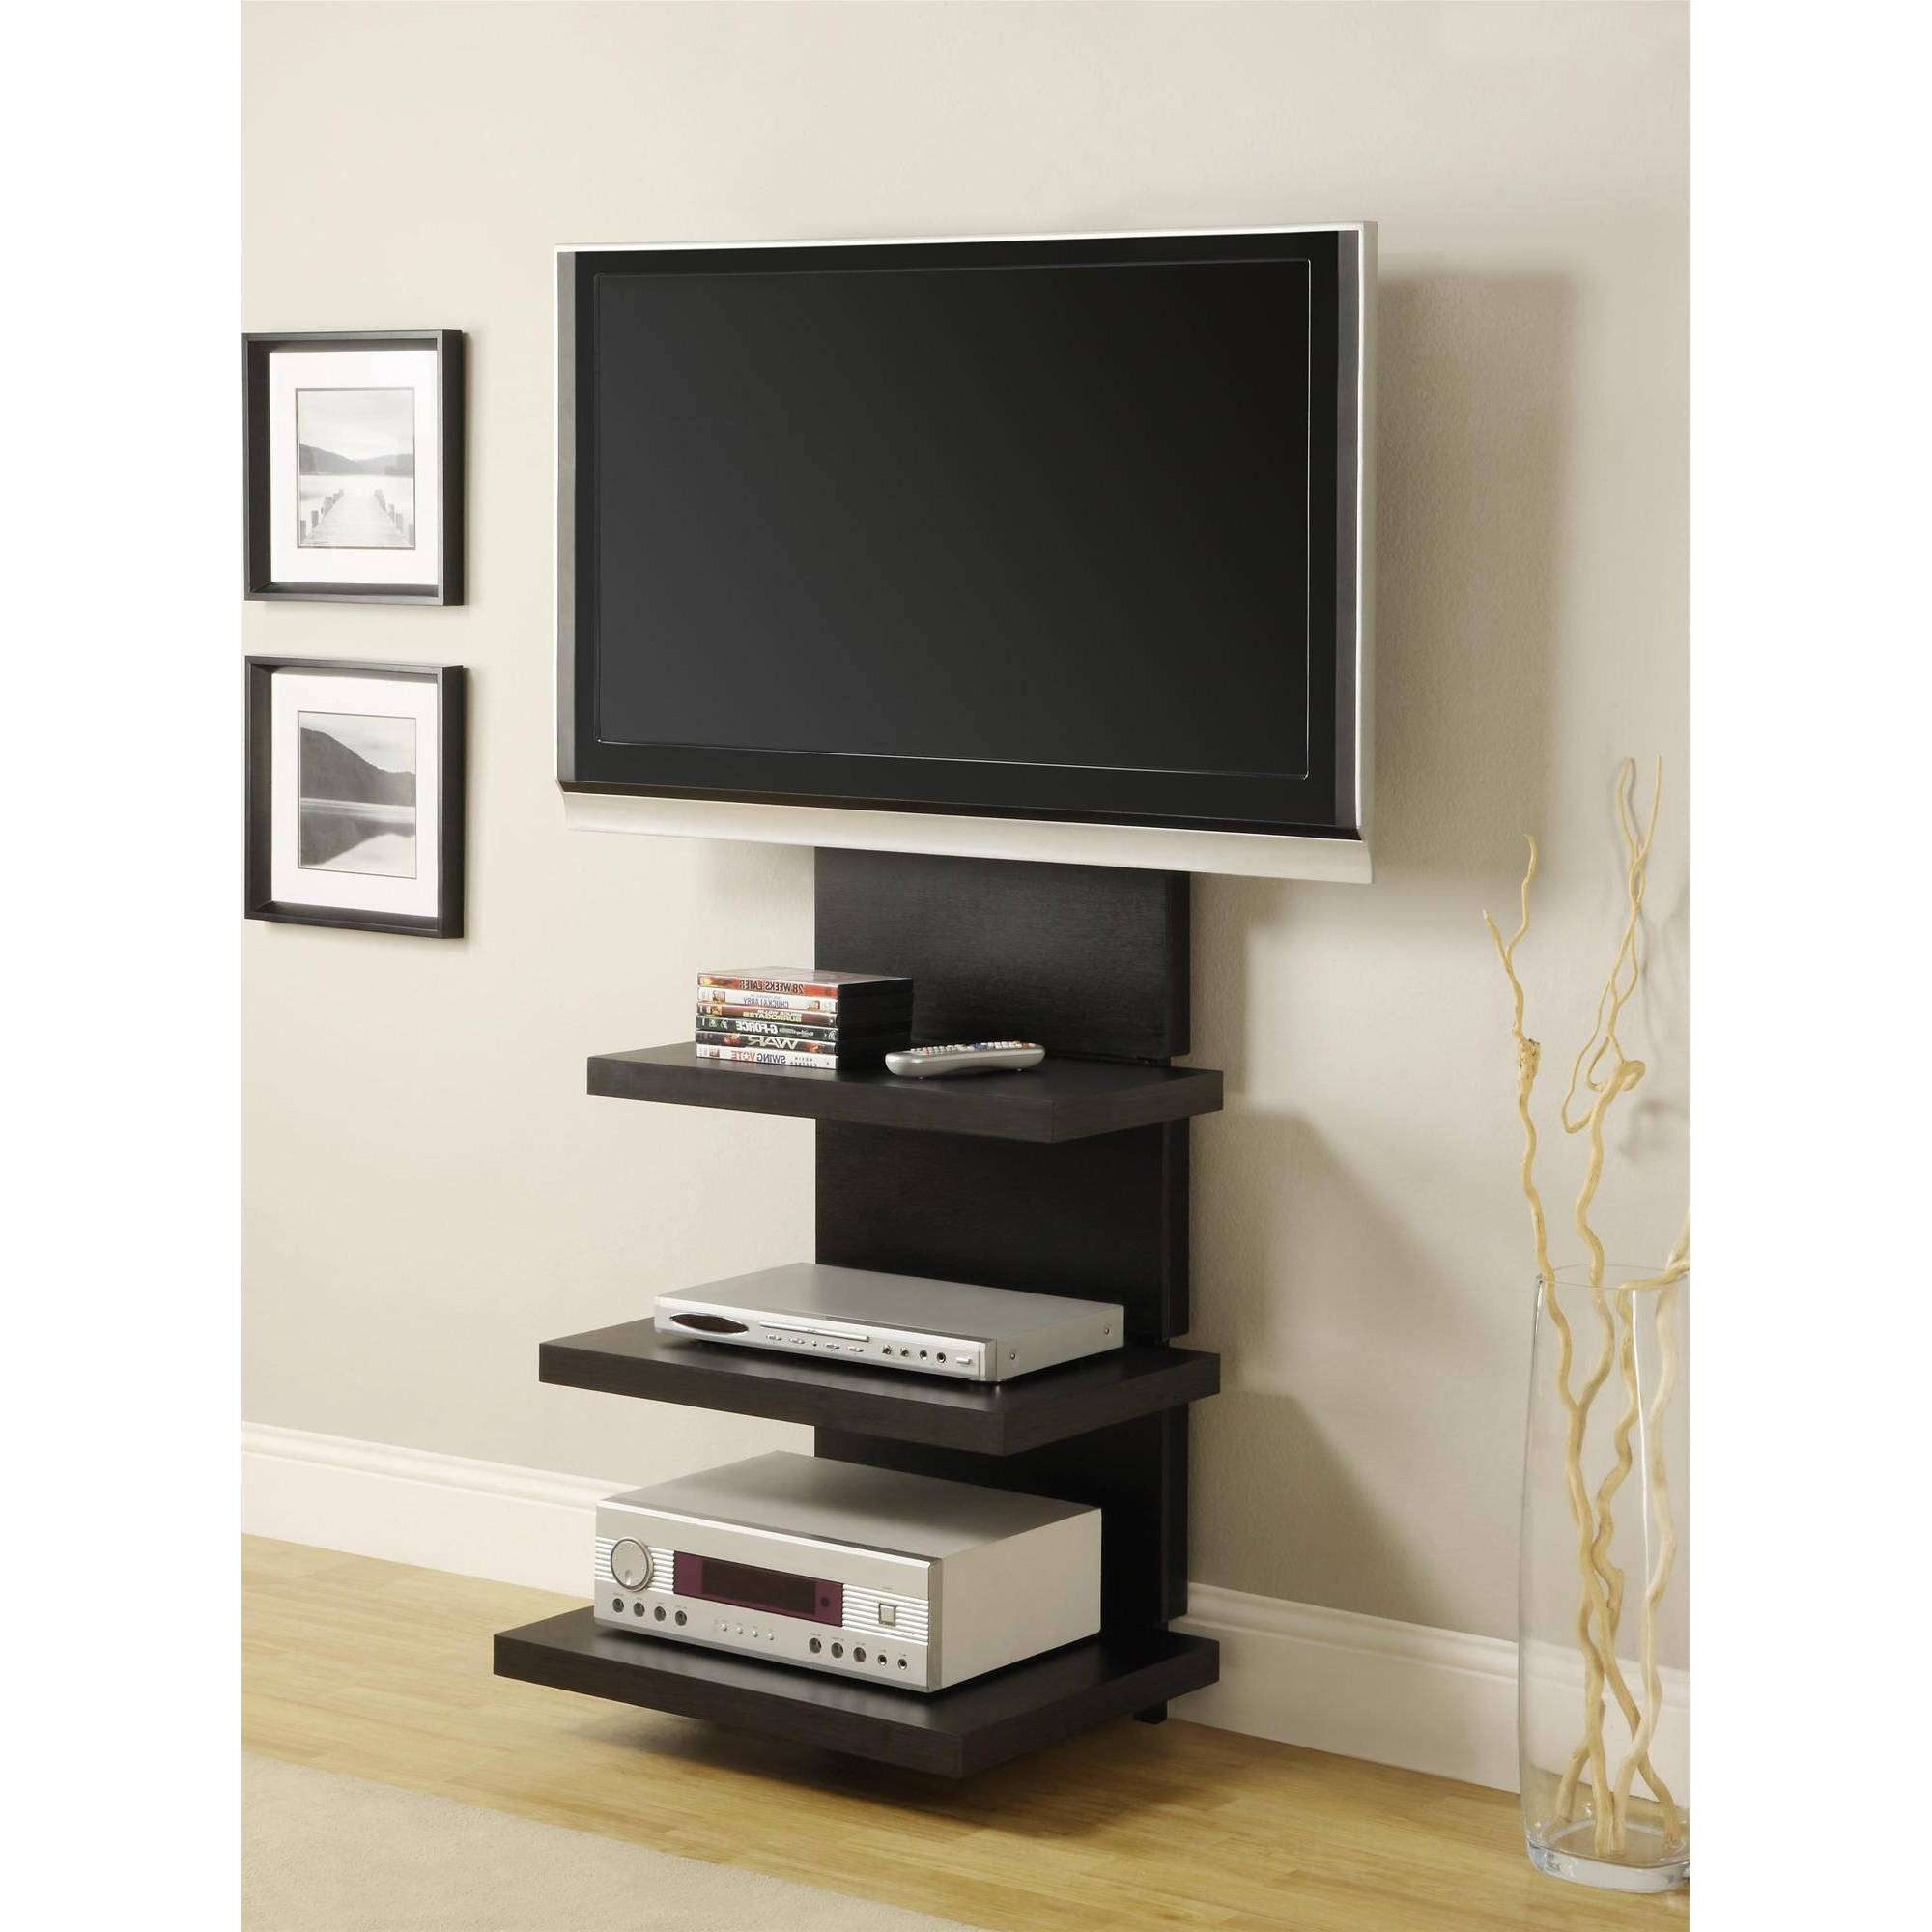 Tv : Small Tv Stands On Wheels Perfect Small White Tv Stand On Intended For Small Tv Stands On Wheels (View 12 of 20)